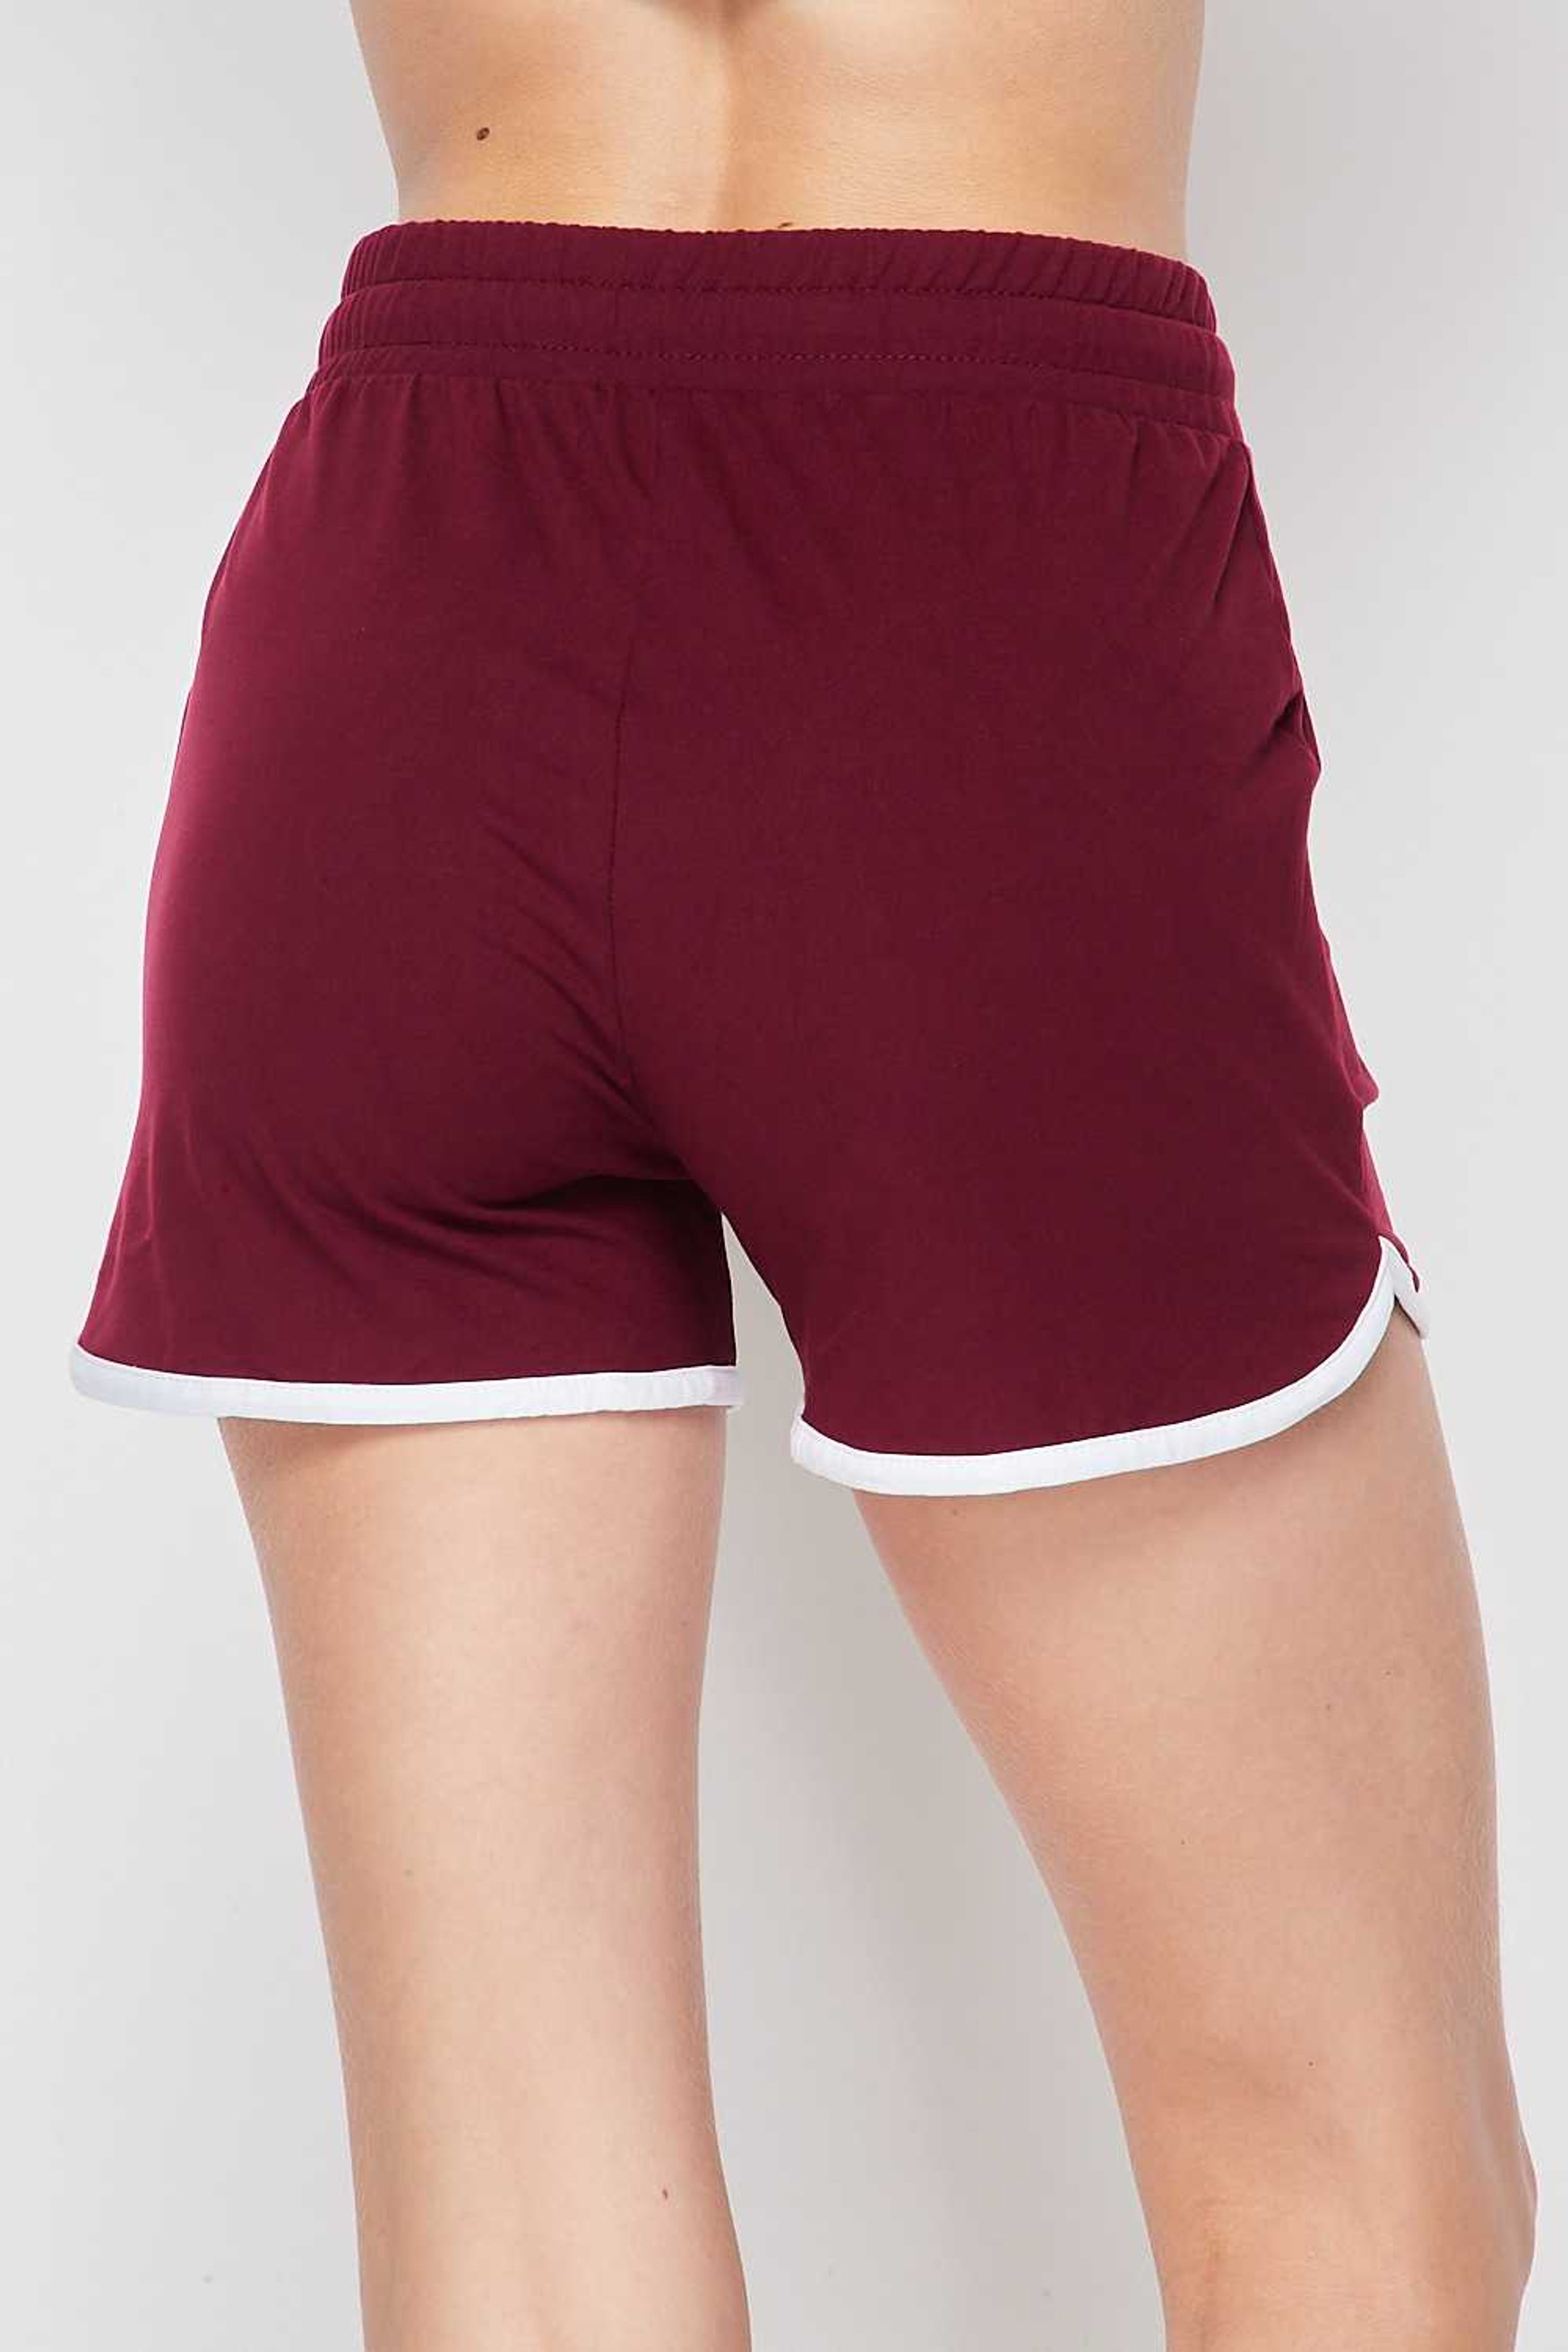 Back side image of Burgundy Buttery Soft Drawstring Waist Dolphin Shorts with Pockets